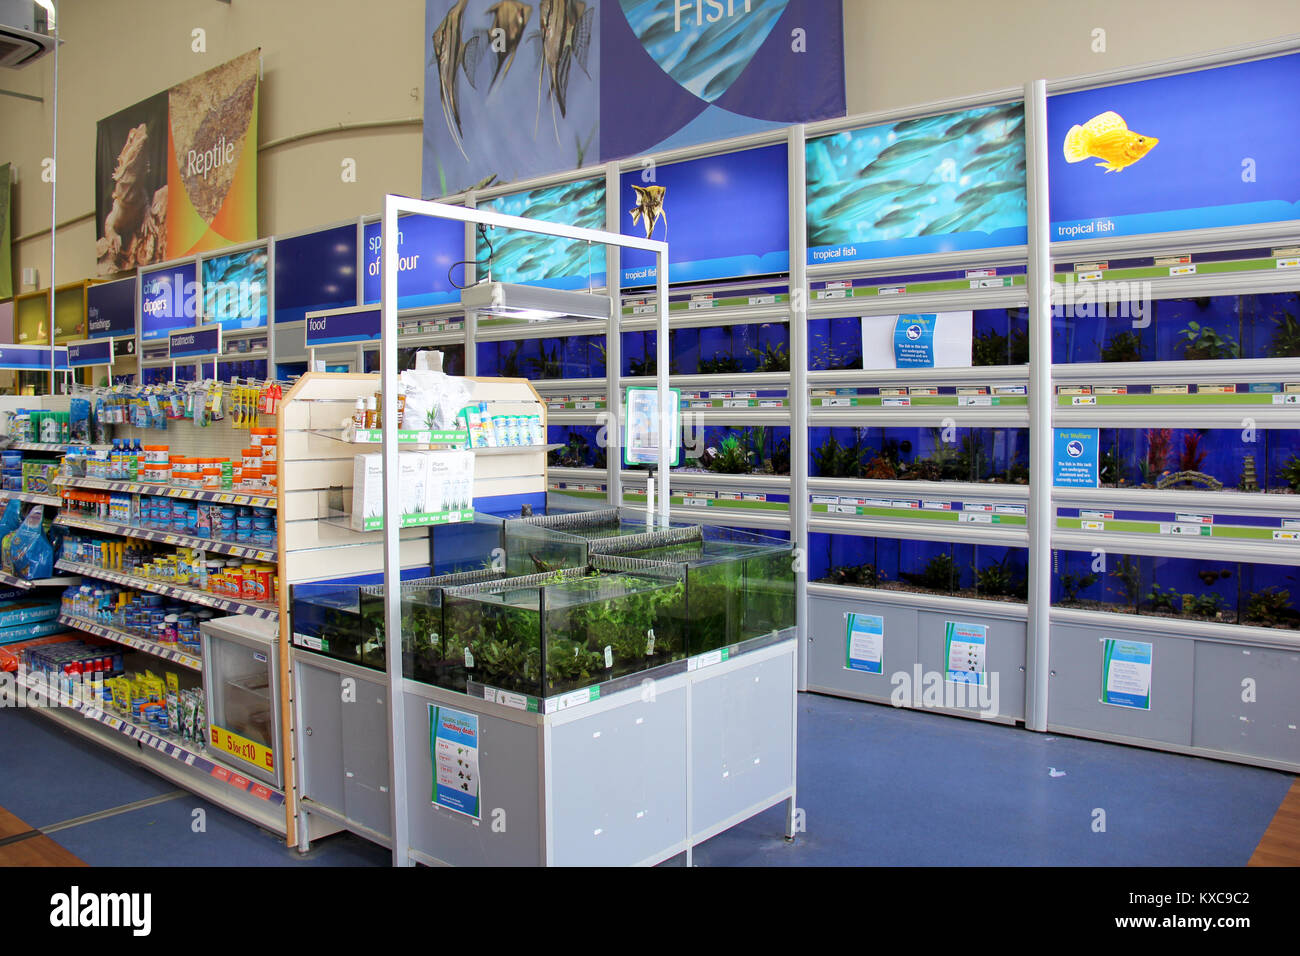 Pet store fish tanks stock photos pet store fish tanks for Pet stores that sell fish